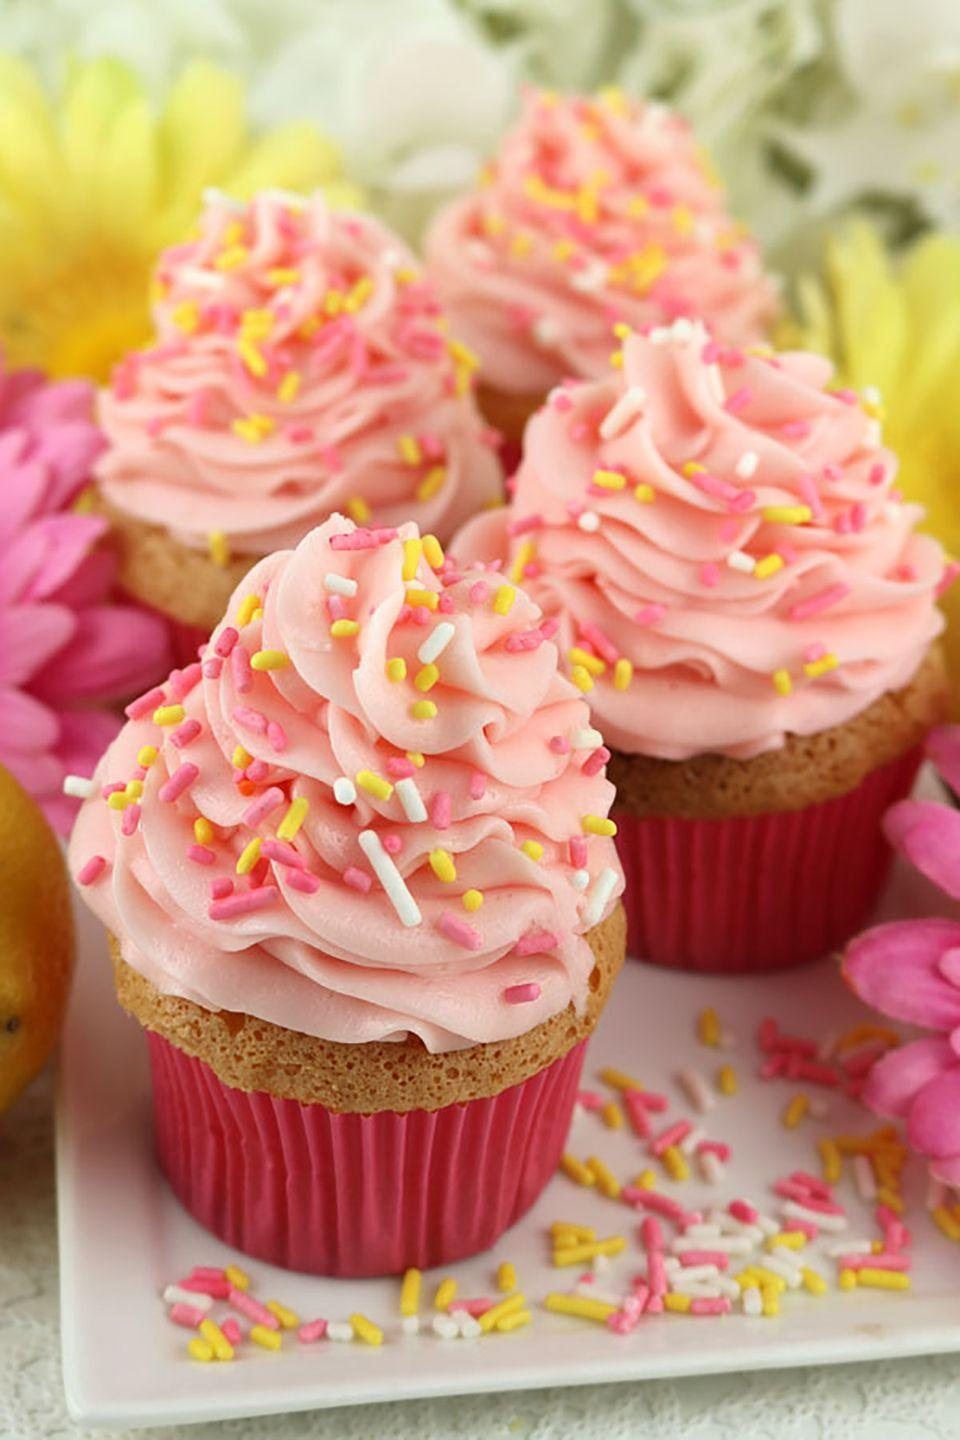 "<p>These soft pink cupcakes just embody spring and make a beautiful treat for Mother's Day. The pink lemonade buttercream frosting brings a tart sweetness to the light angel food base that's absolutely delightful. </p><p><strong>Get the recipe at <a href=""http://www.twosisterscrafting.com/angel-food-cupcakes-with-pink-lemonade-frosting/"" rel=""nofollow noopener"" target=""_blank"" data-ylk=""slk:Two Sisters Crafting"" class=""link rapid-noclick-resp"">Two Sisters Crafting</a>.</strong></p>"